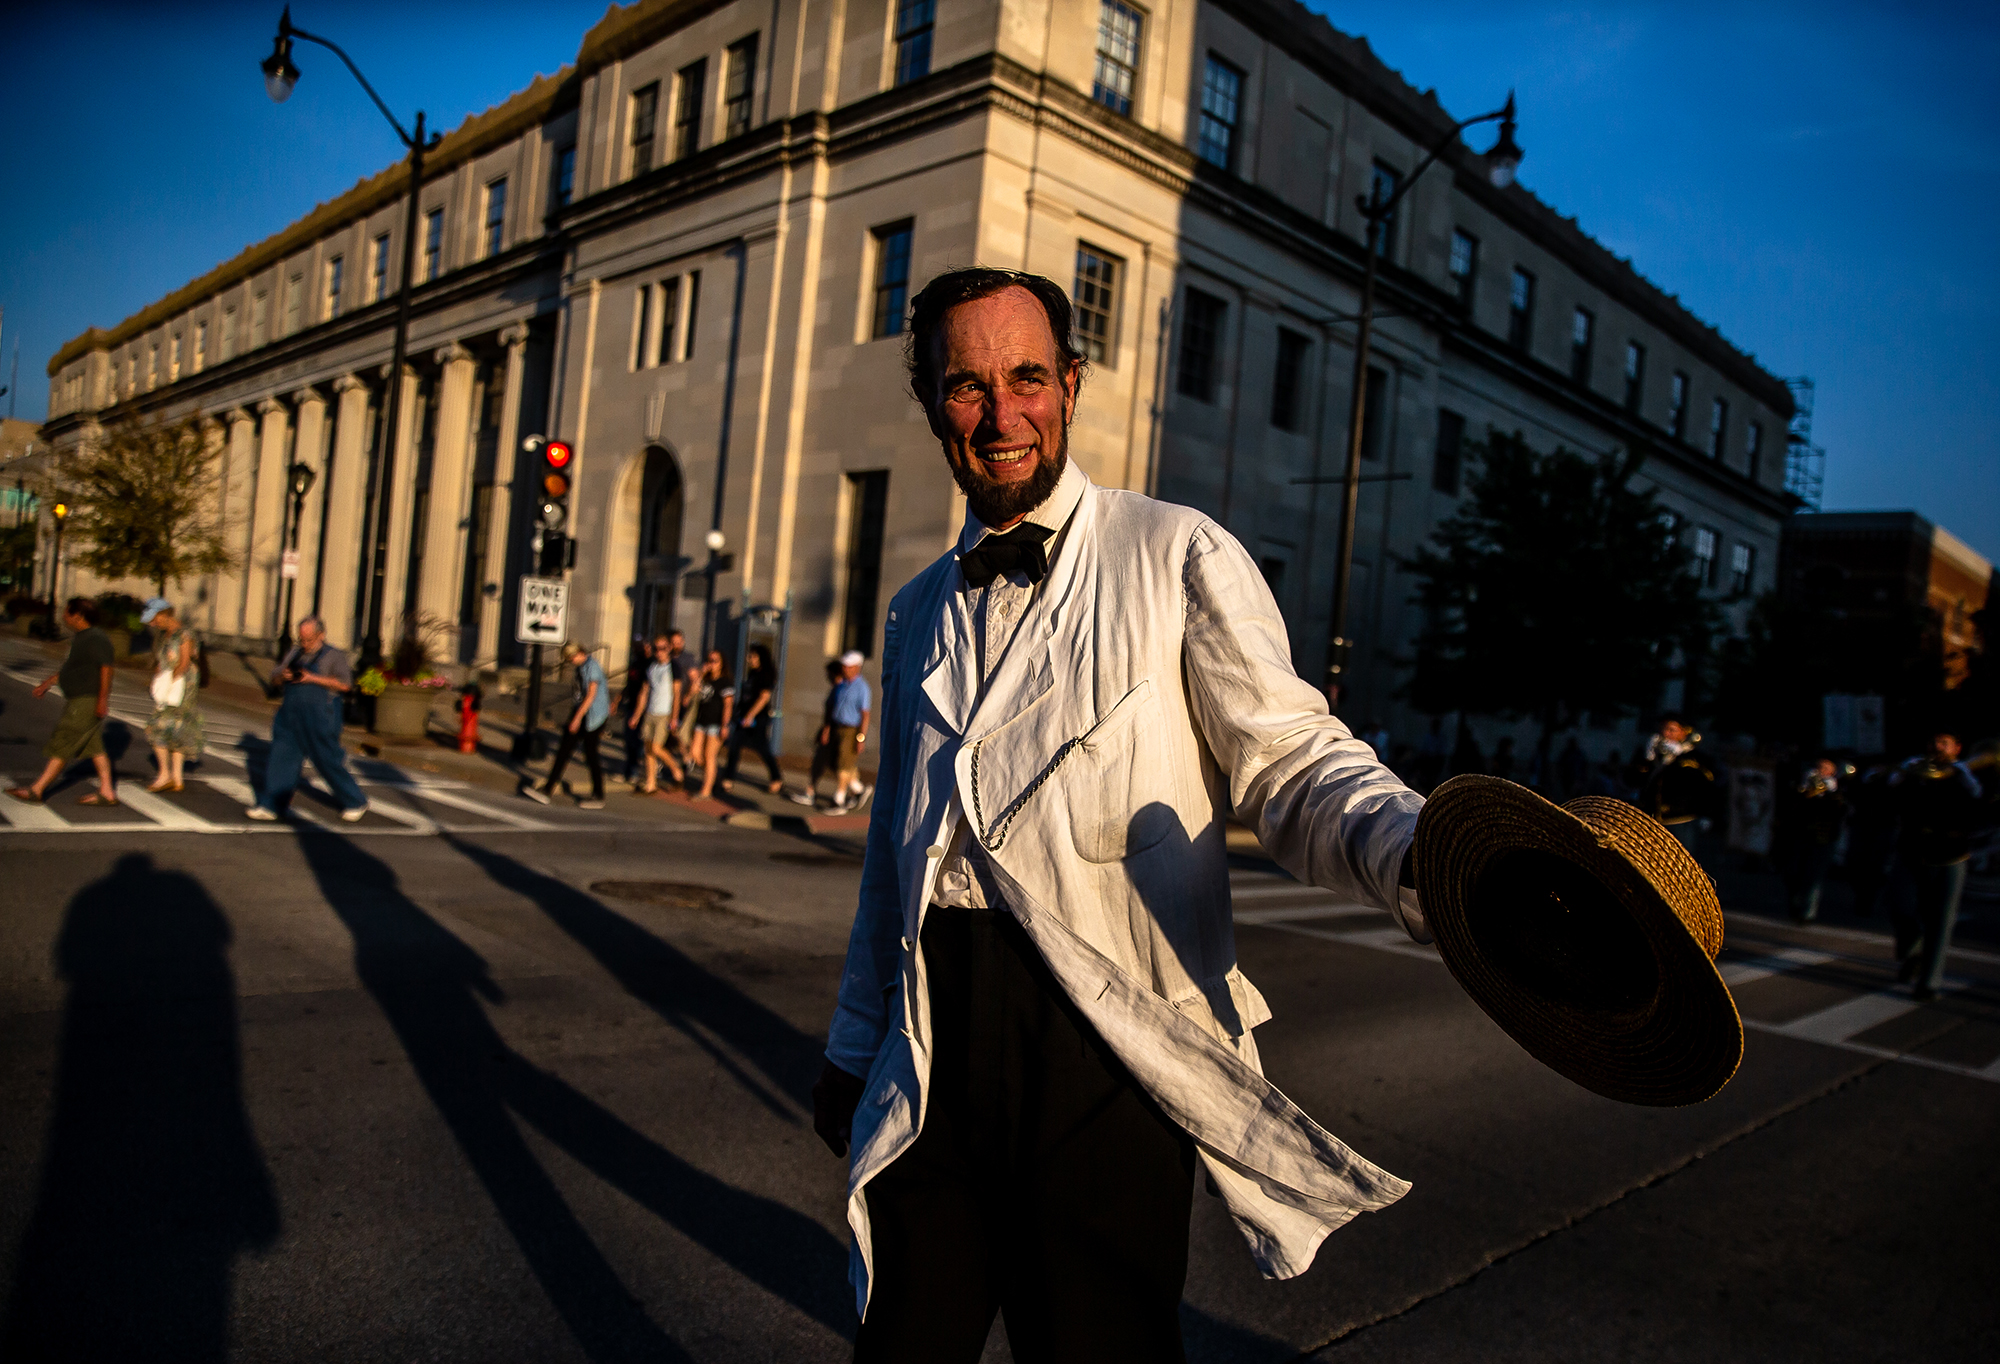 Fritz Klein portraying Abraham Lincoln heads up South Sixth Street being led by a  massive replica of a campaign ball during the Lincoln Wide Awake Parade, a re-enactment of an 1860 parade to support Abraham LincolnÕs presidential candidacy, as they march with the Wide Awakes to the Old State Capitol from the Lincoln Home, Saturday, Aug. 4, 2018, in Springfield, Ill. The Wide Awakes, who wore black caps and black hats when they marched, got their name from a small group of young self-named supporters who impressed Lincoln at a political rally, according to the Journal of American History. [Justin L. Fowler/The State Journal-Register]